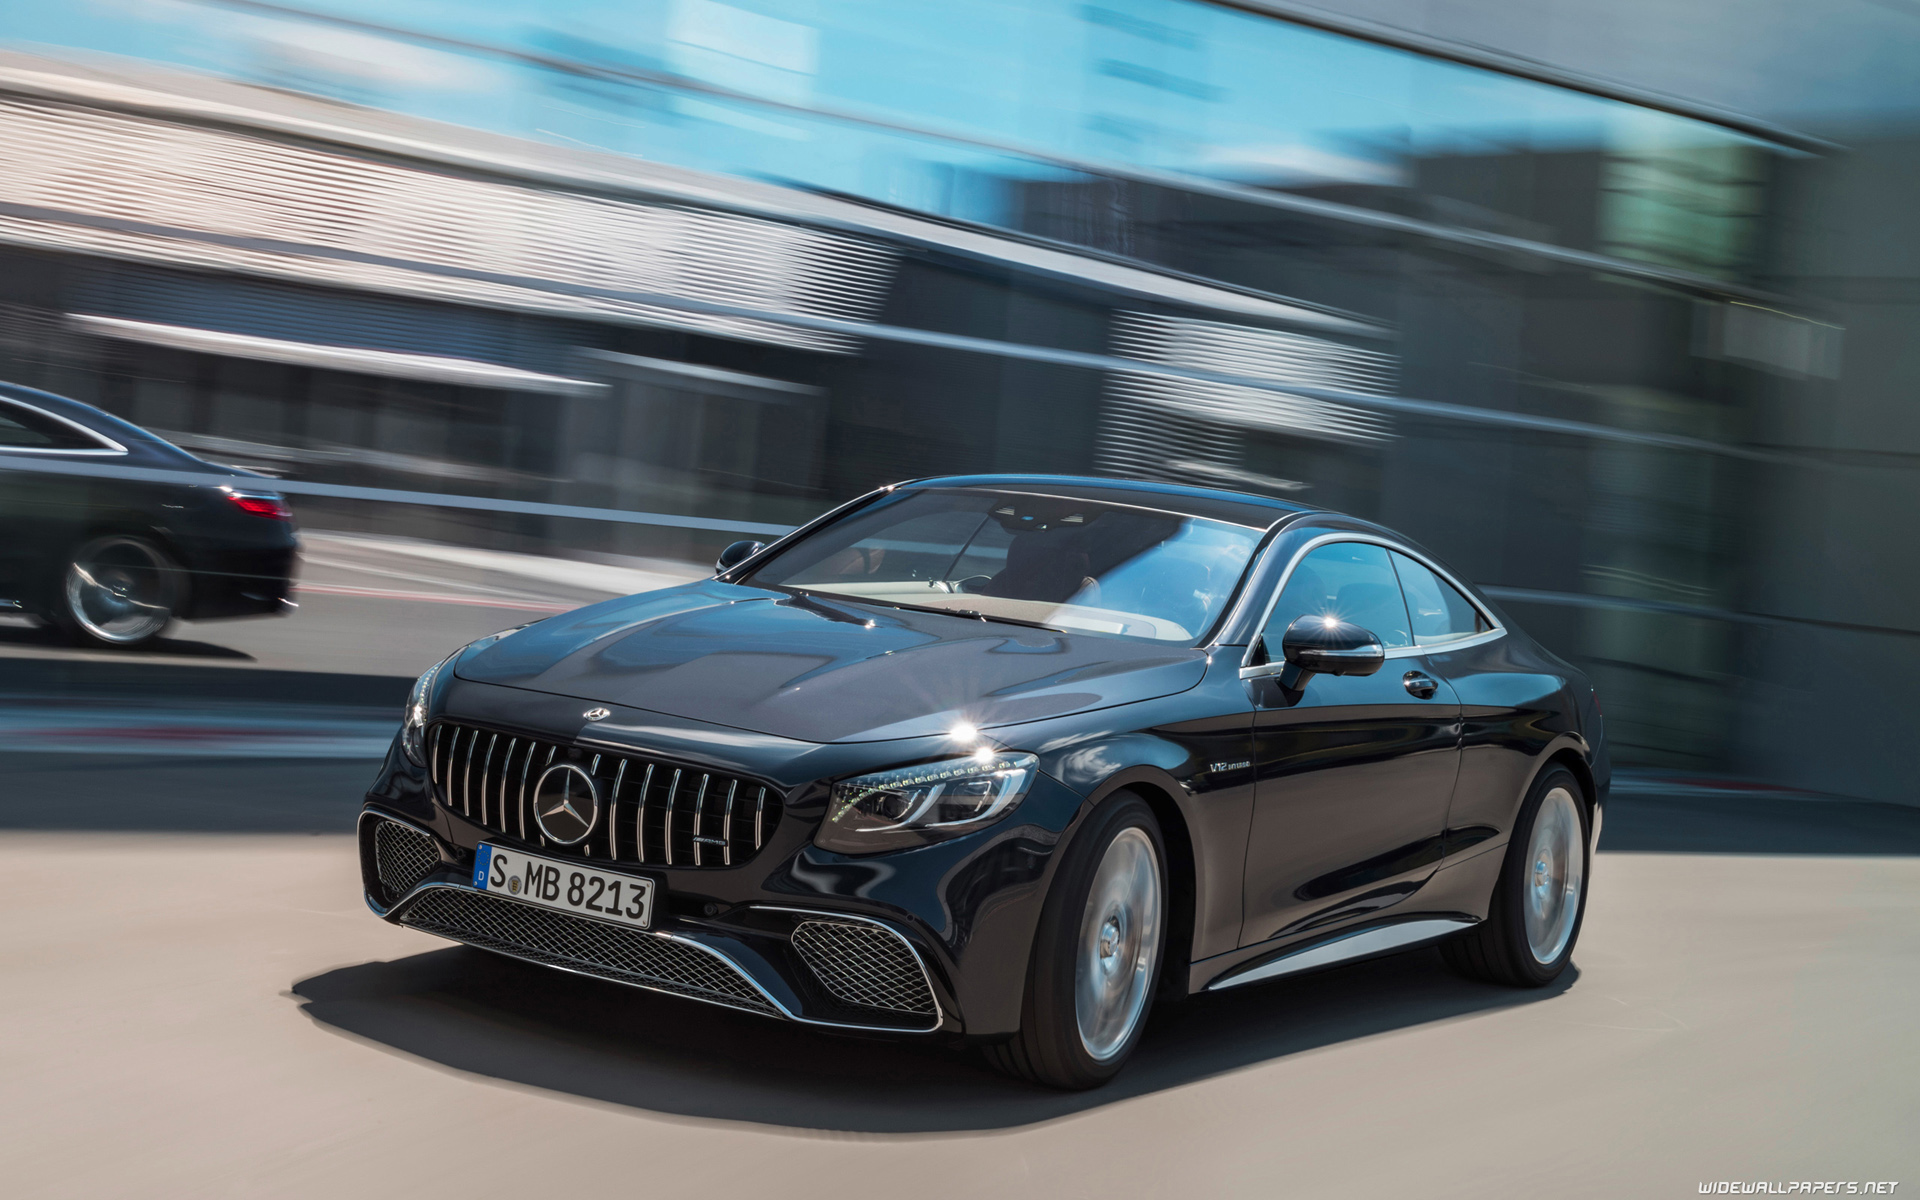 Mercedes Benz S Class Coupe Cars Desktop Wallpapers Hd And Wide